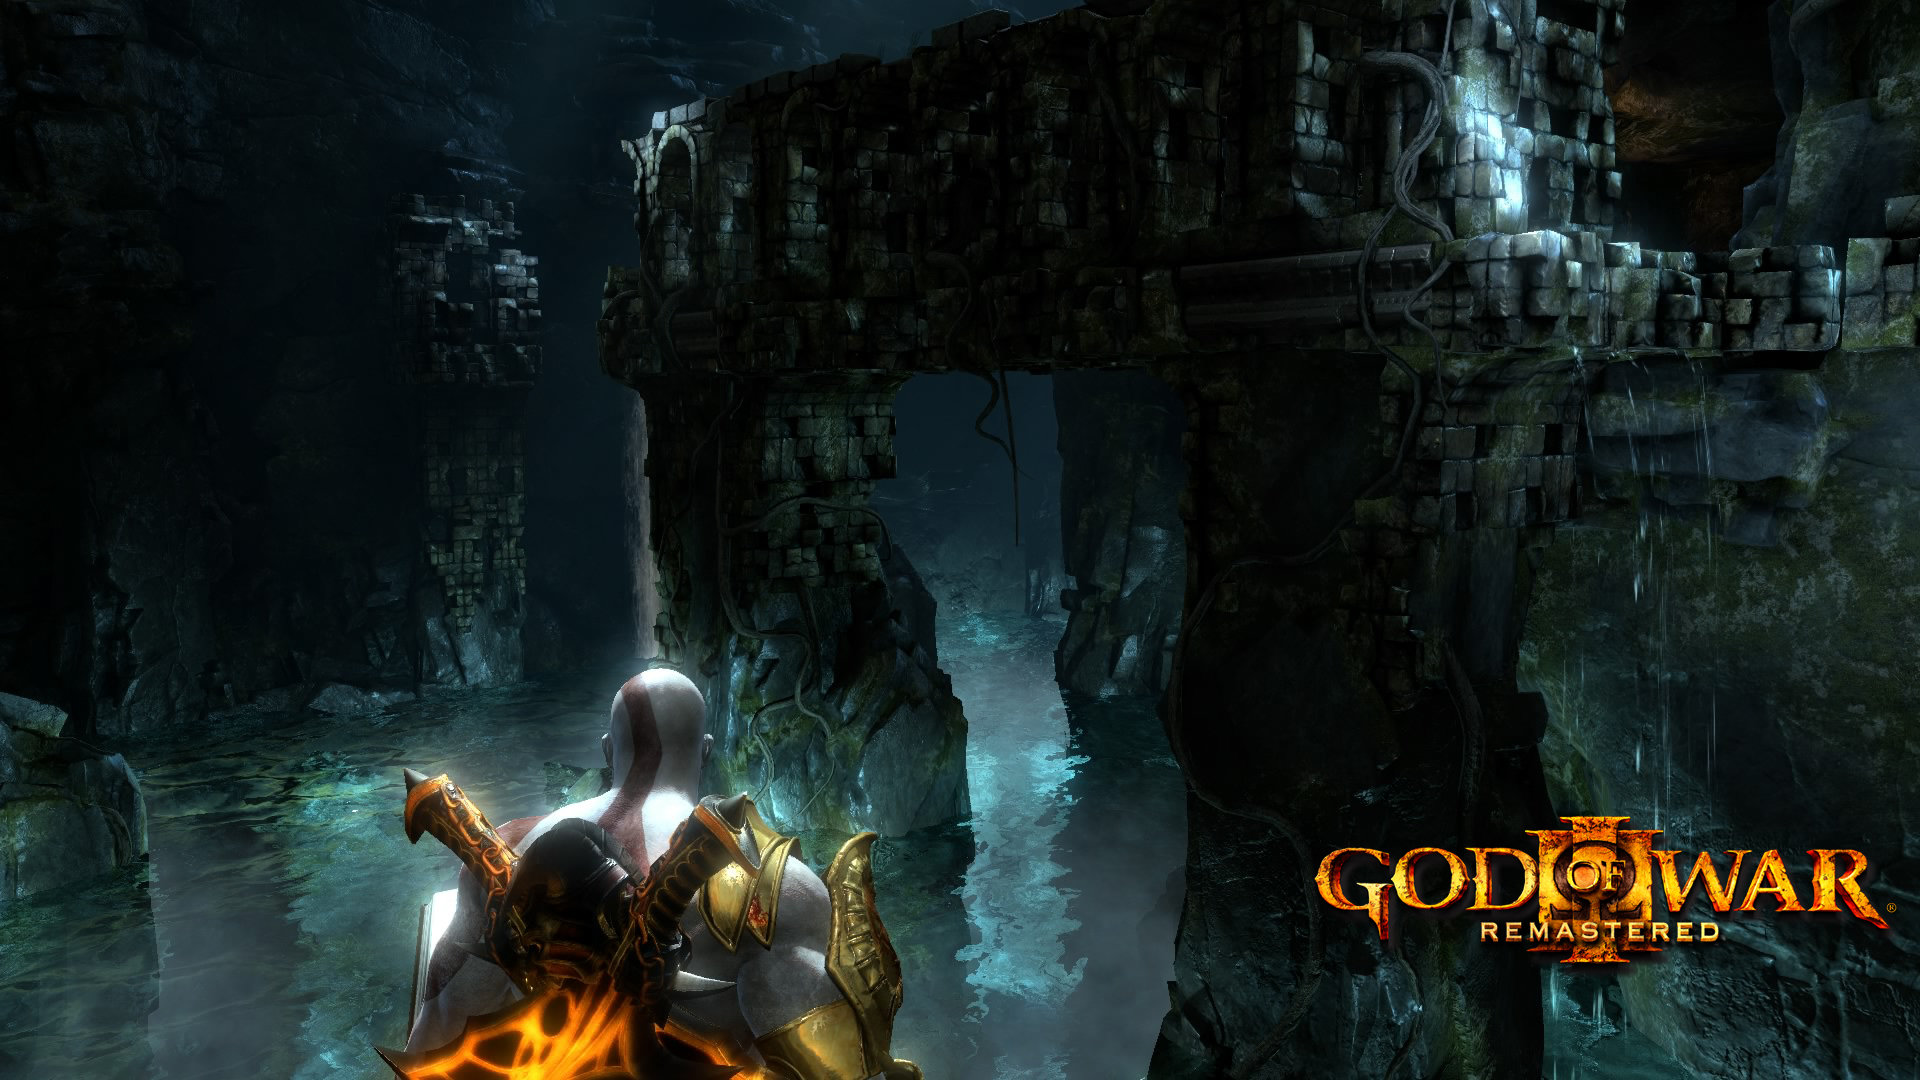 Hd wallpaper we heart it - God Of War 3 Ps4 Version Announced Coming In 1080p